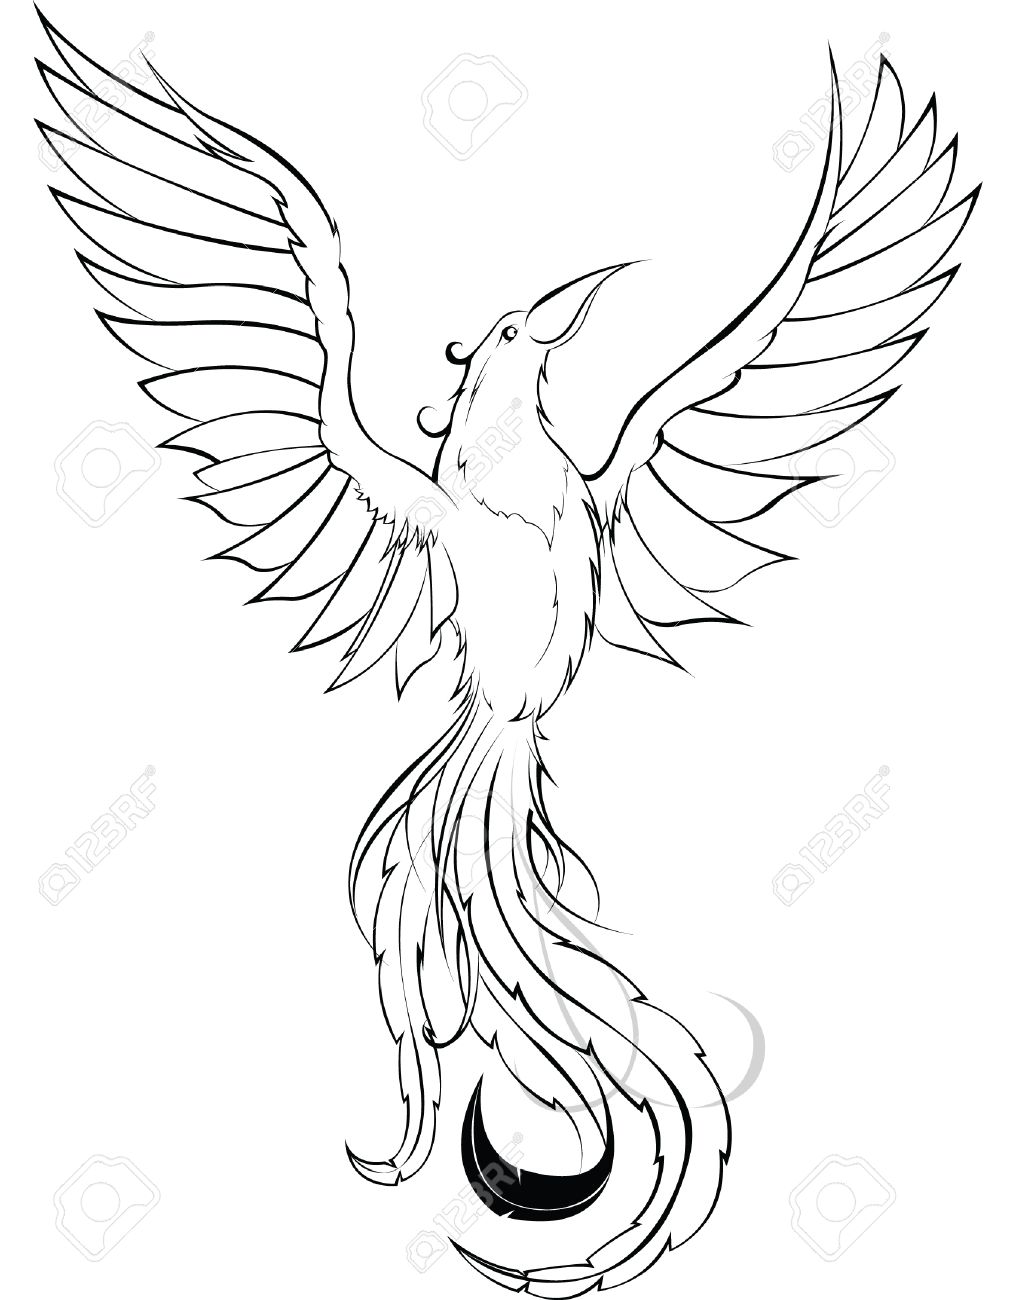 phoenix sketch royalty free cliparts vectors and stock